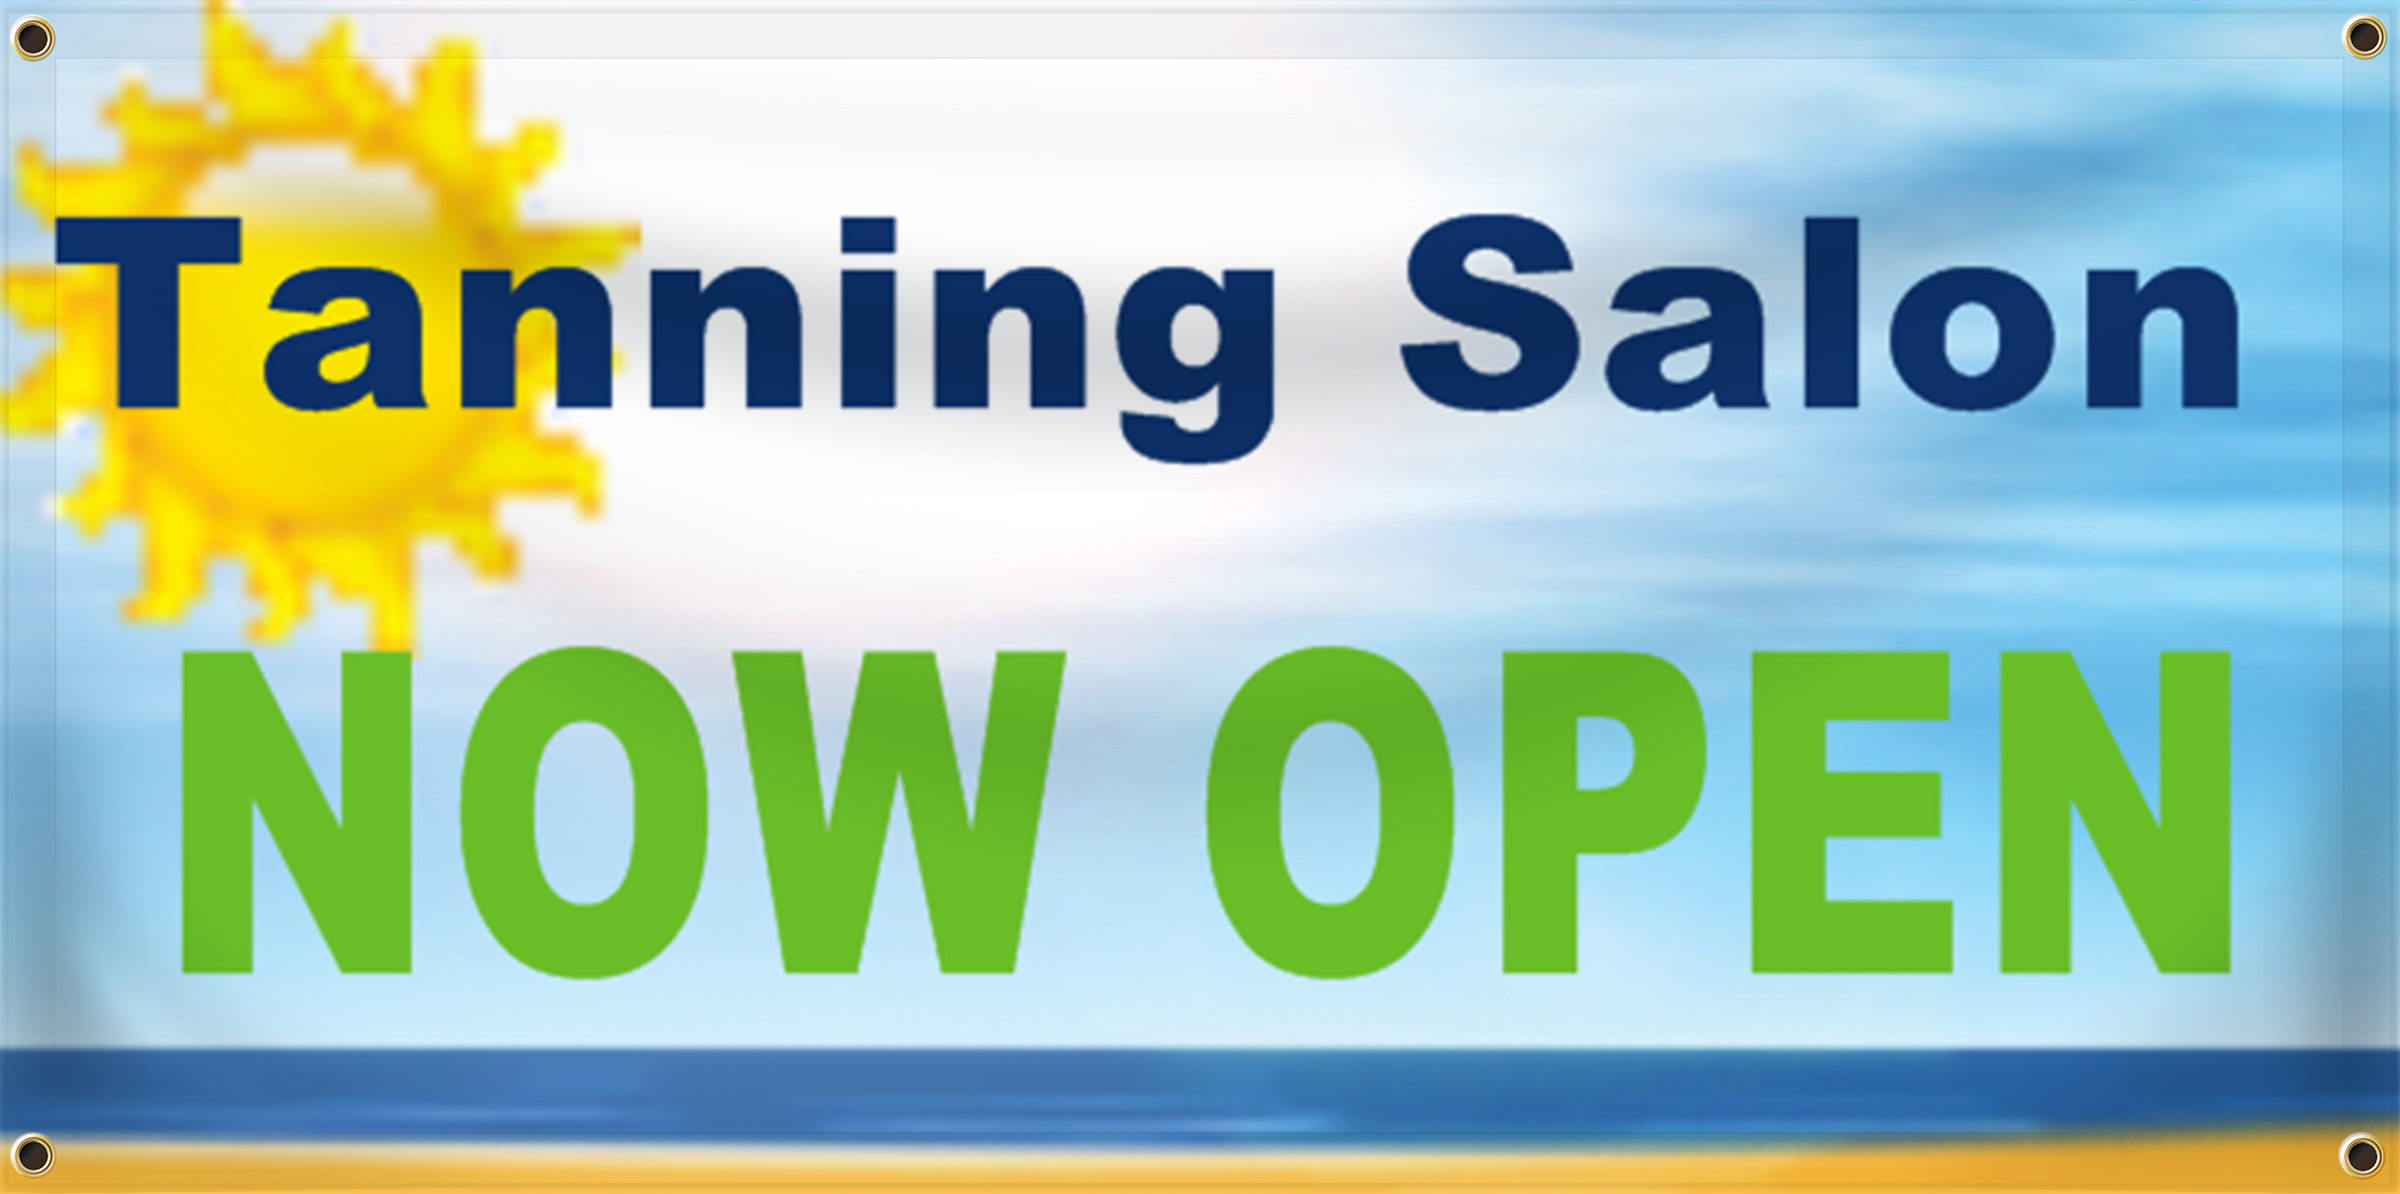 Tanning Salon Banner Idea | LawnSigns.com